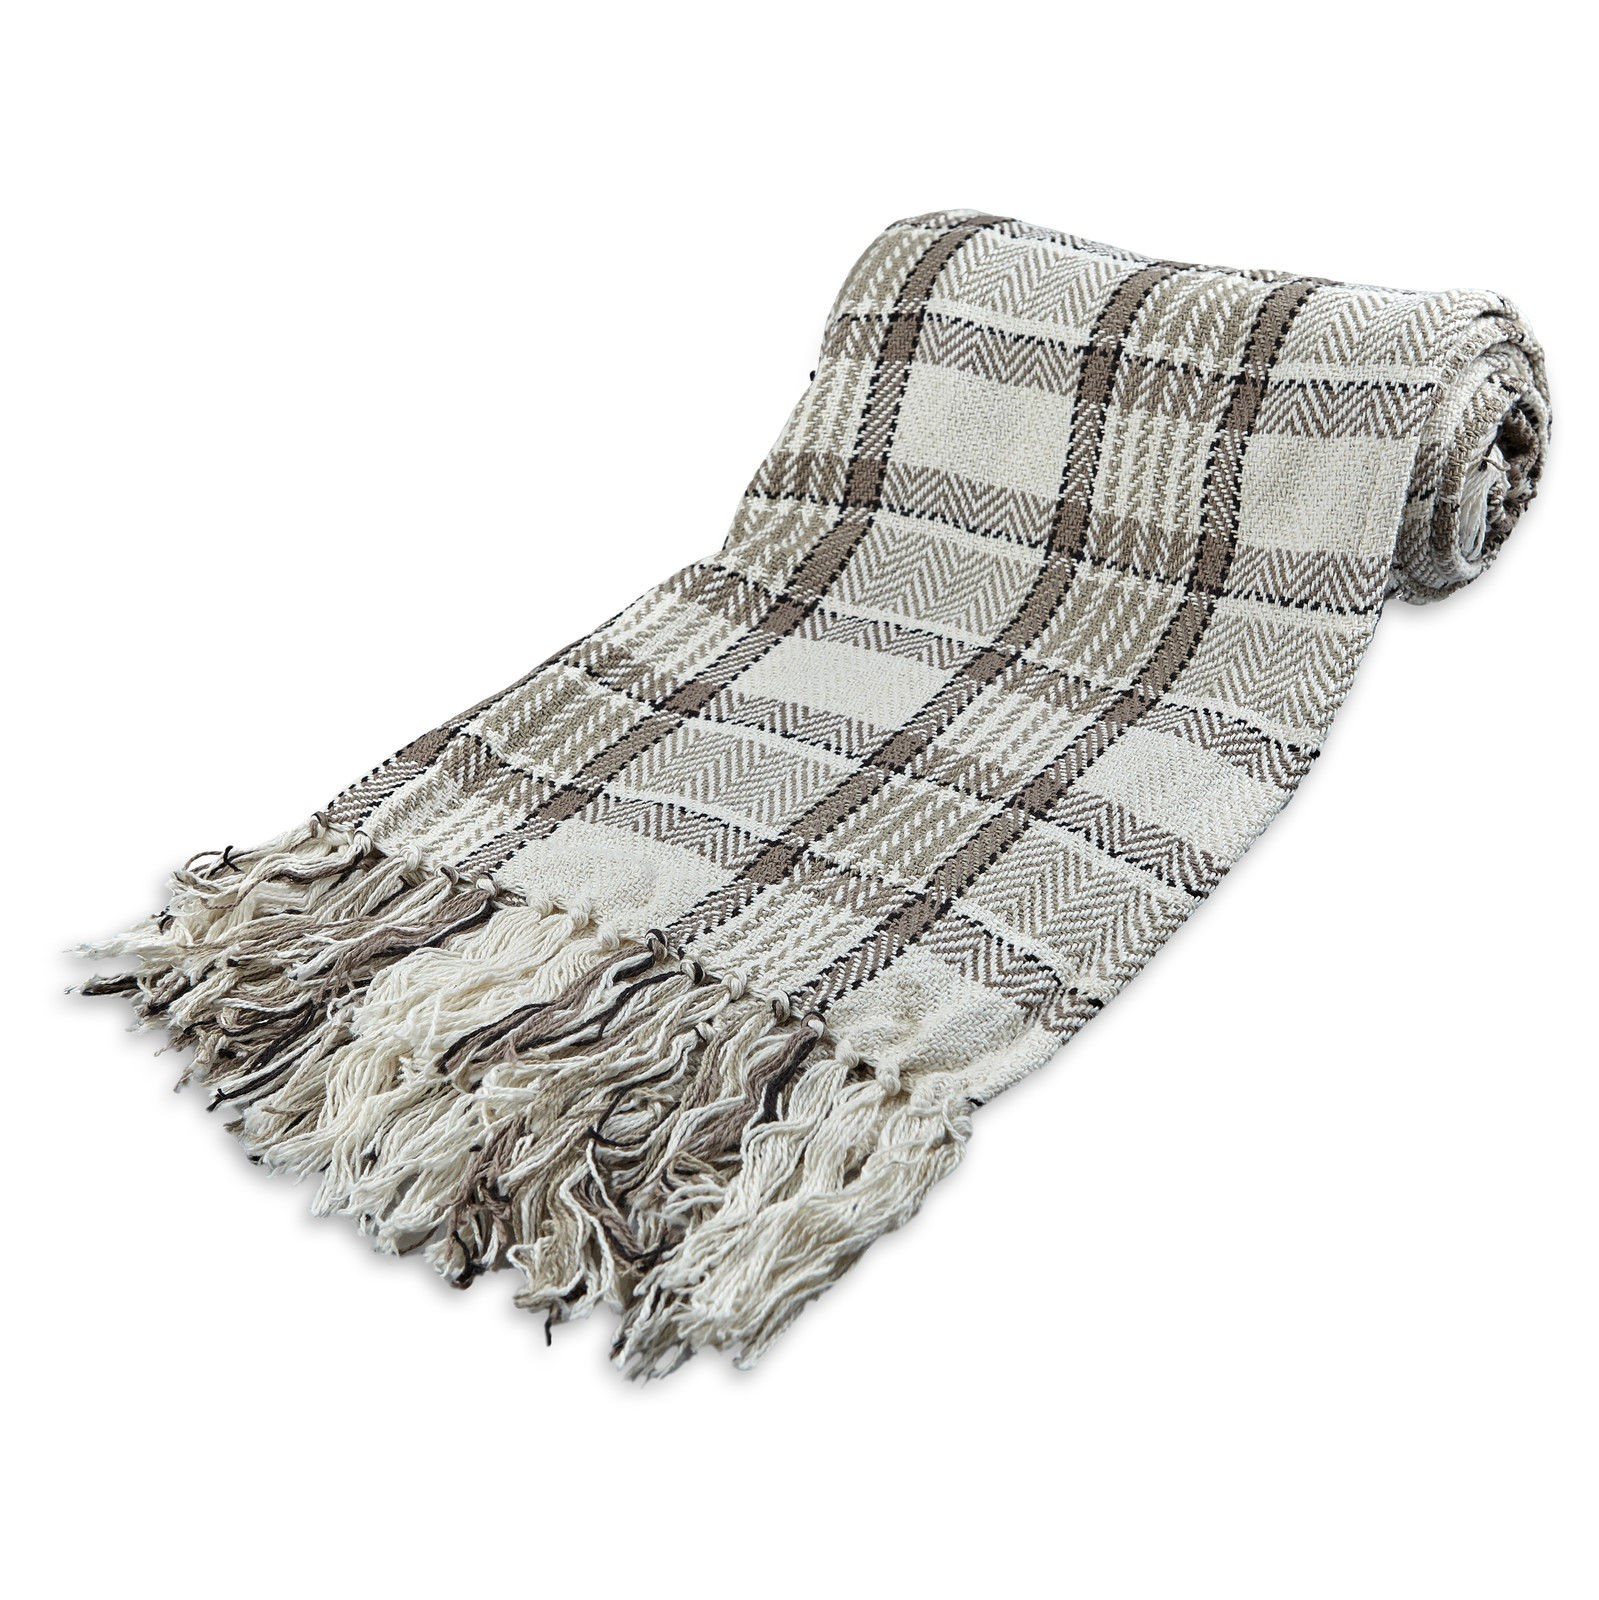 Sofa L Jumbo Large 100 Cotton Highland Tartan Check Sofa Bed Throw 4 Colours 5 Sizes Natural King Size Extra Jumbo L